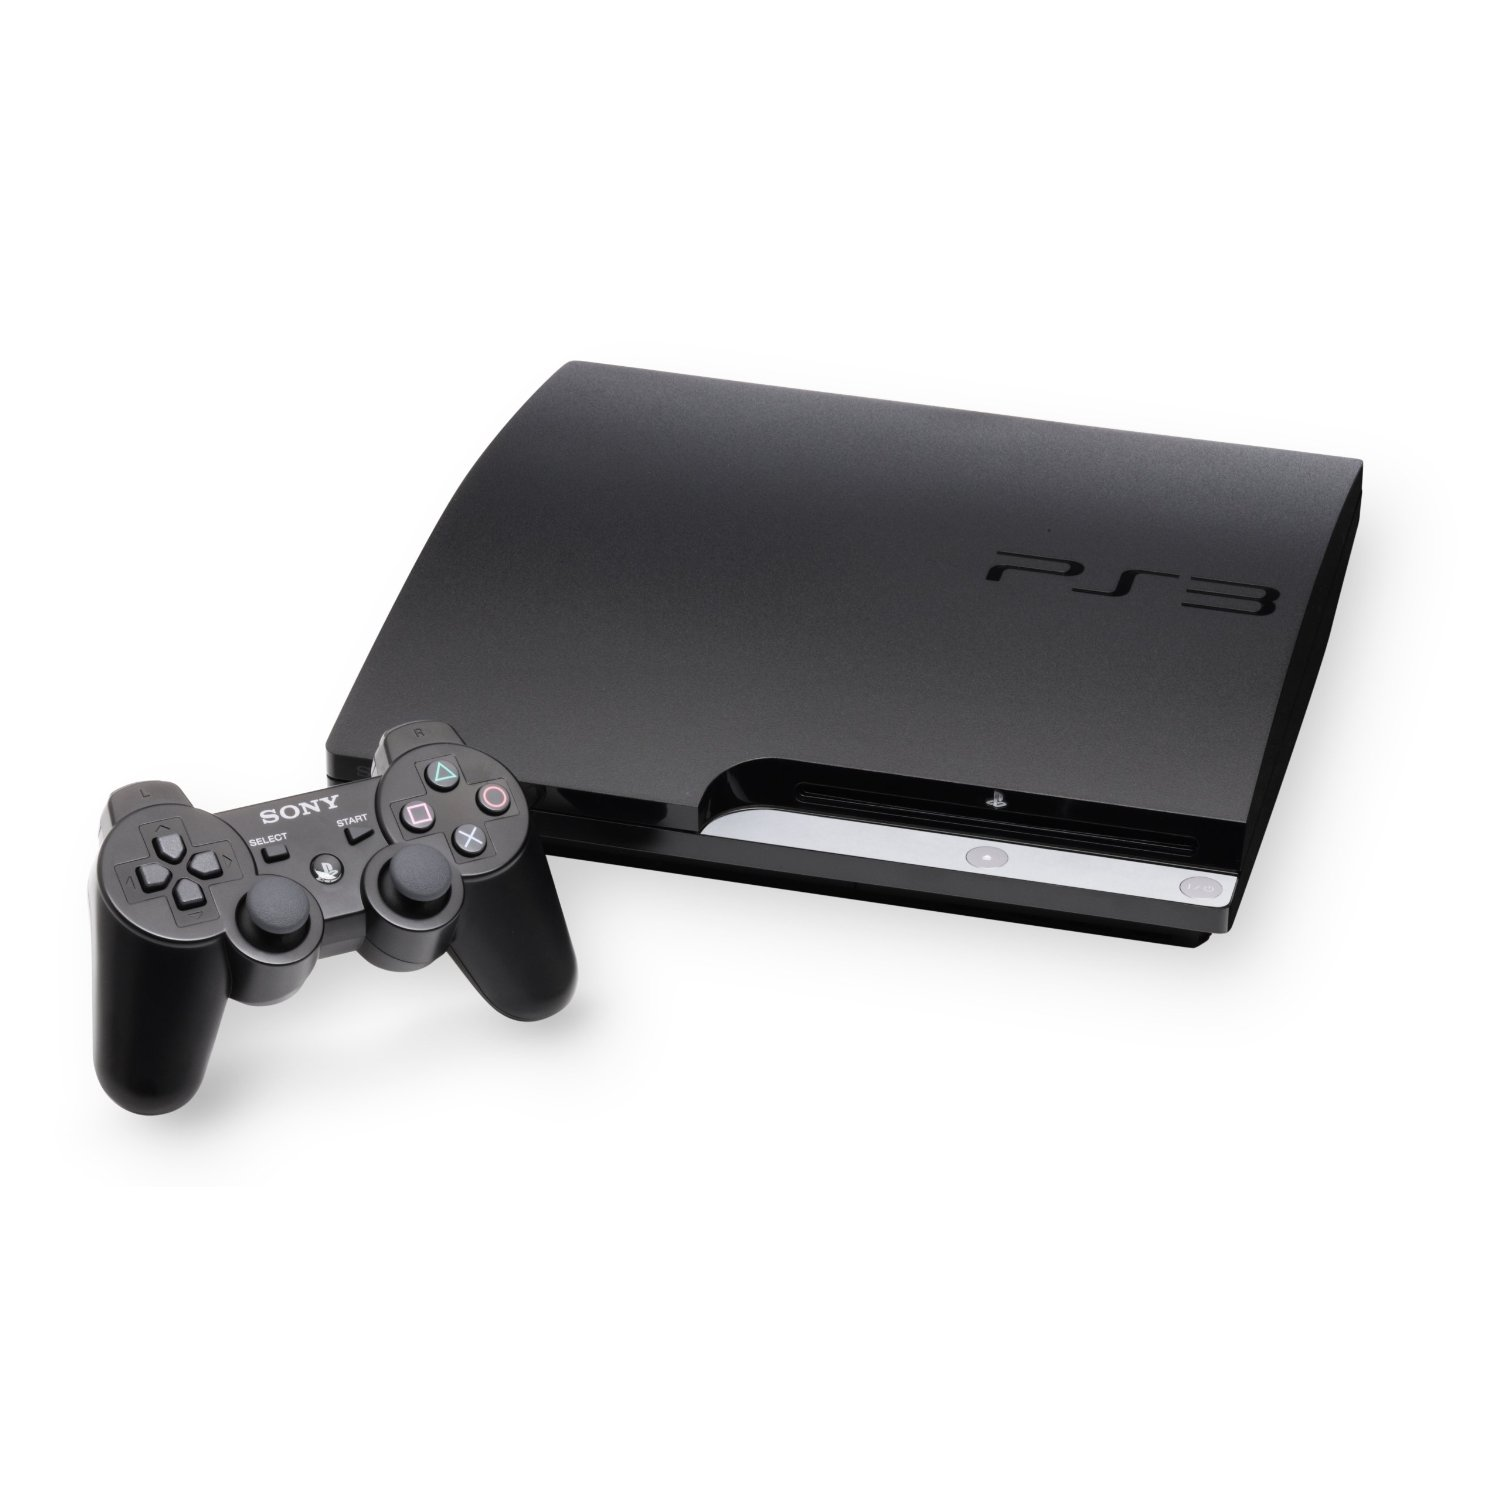 Sony PLAYSTATION 3 160GB Video Game System PS3 Console Blu-Ray - BRAND NEW